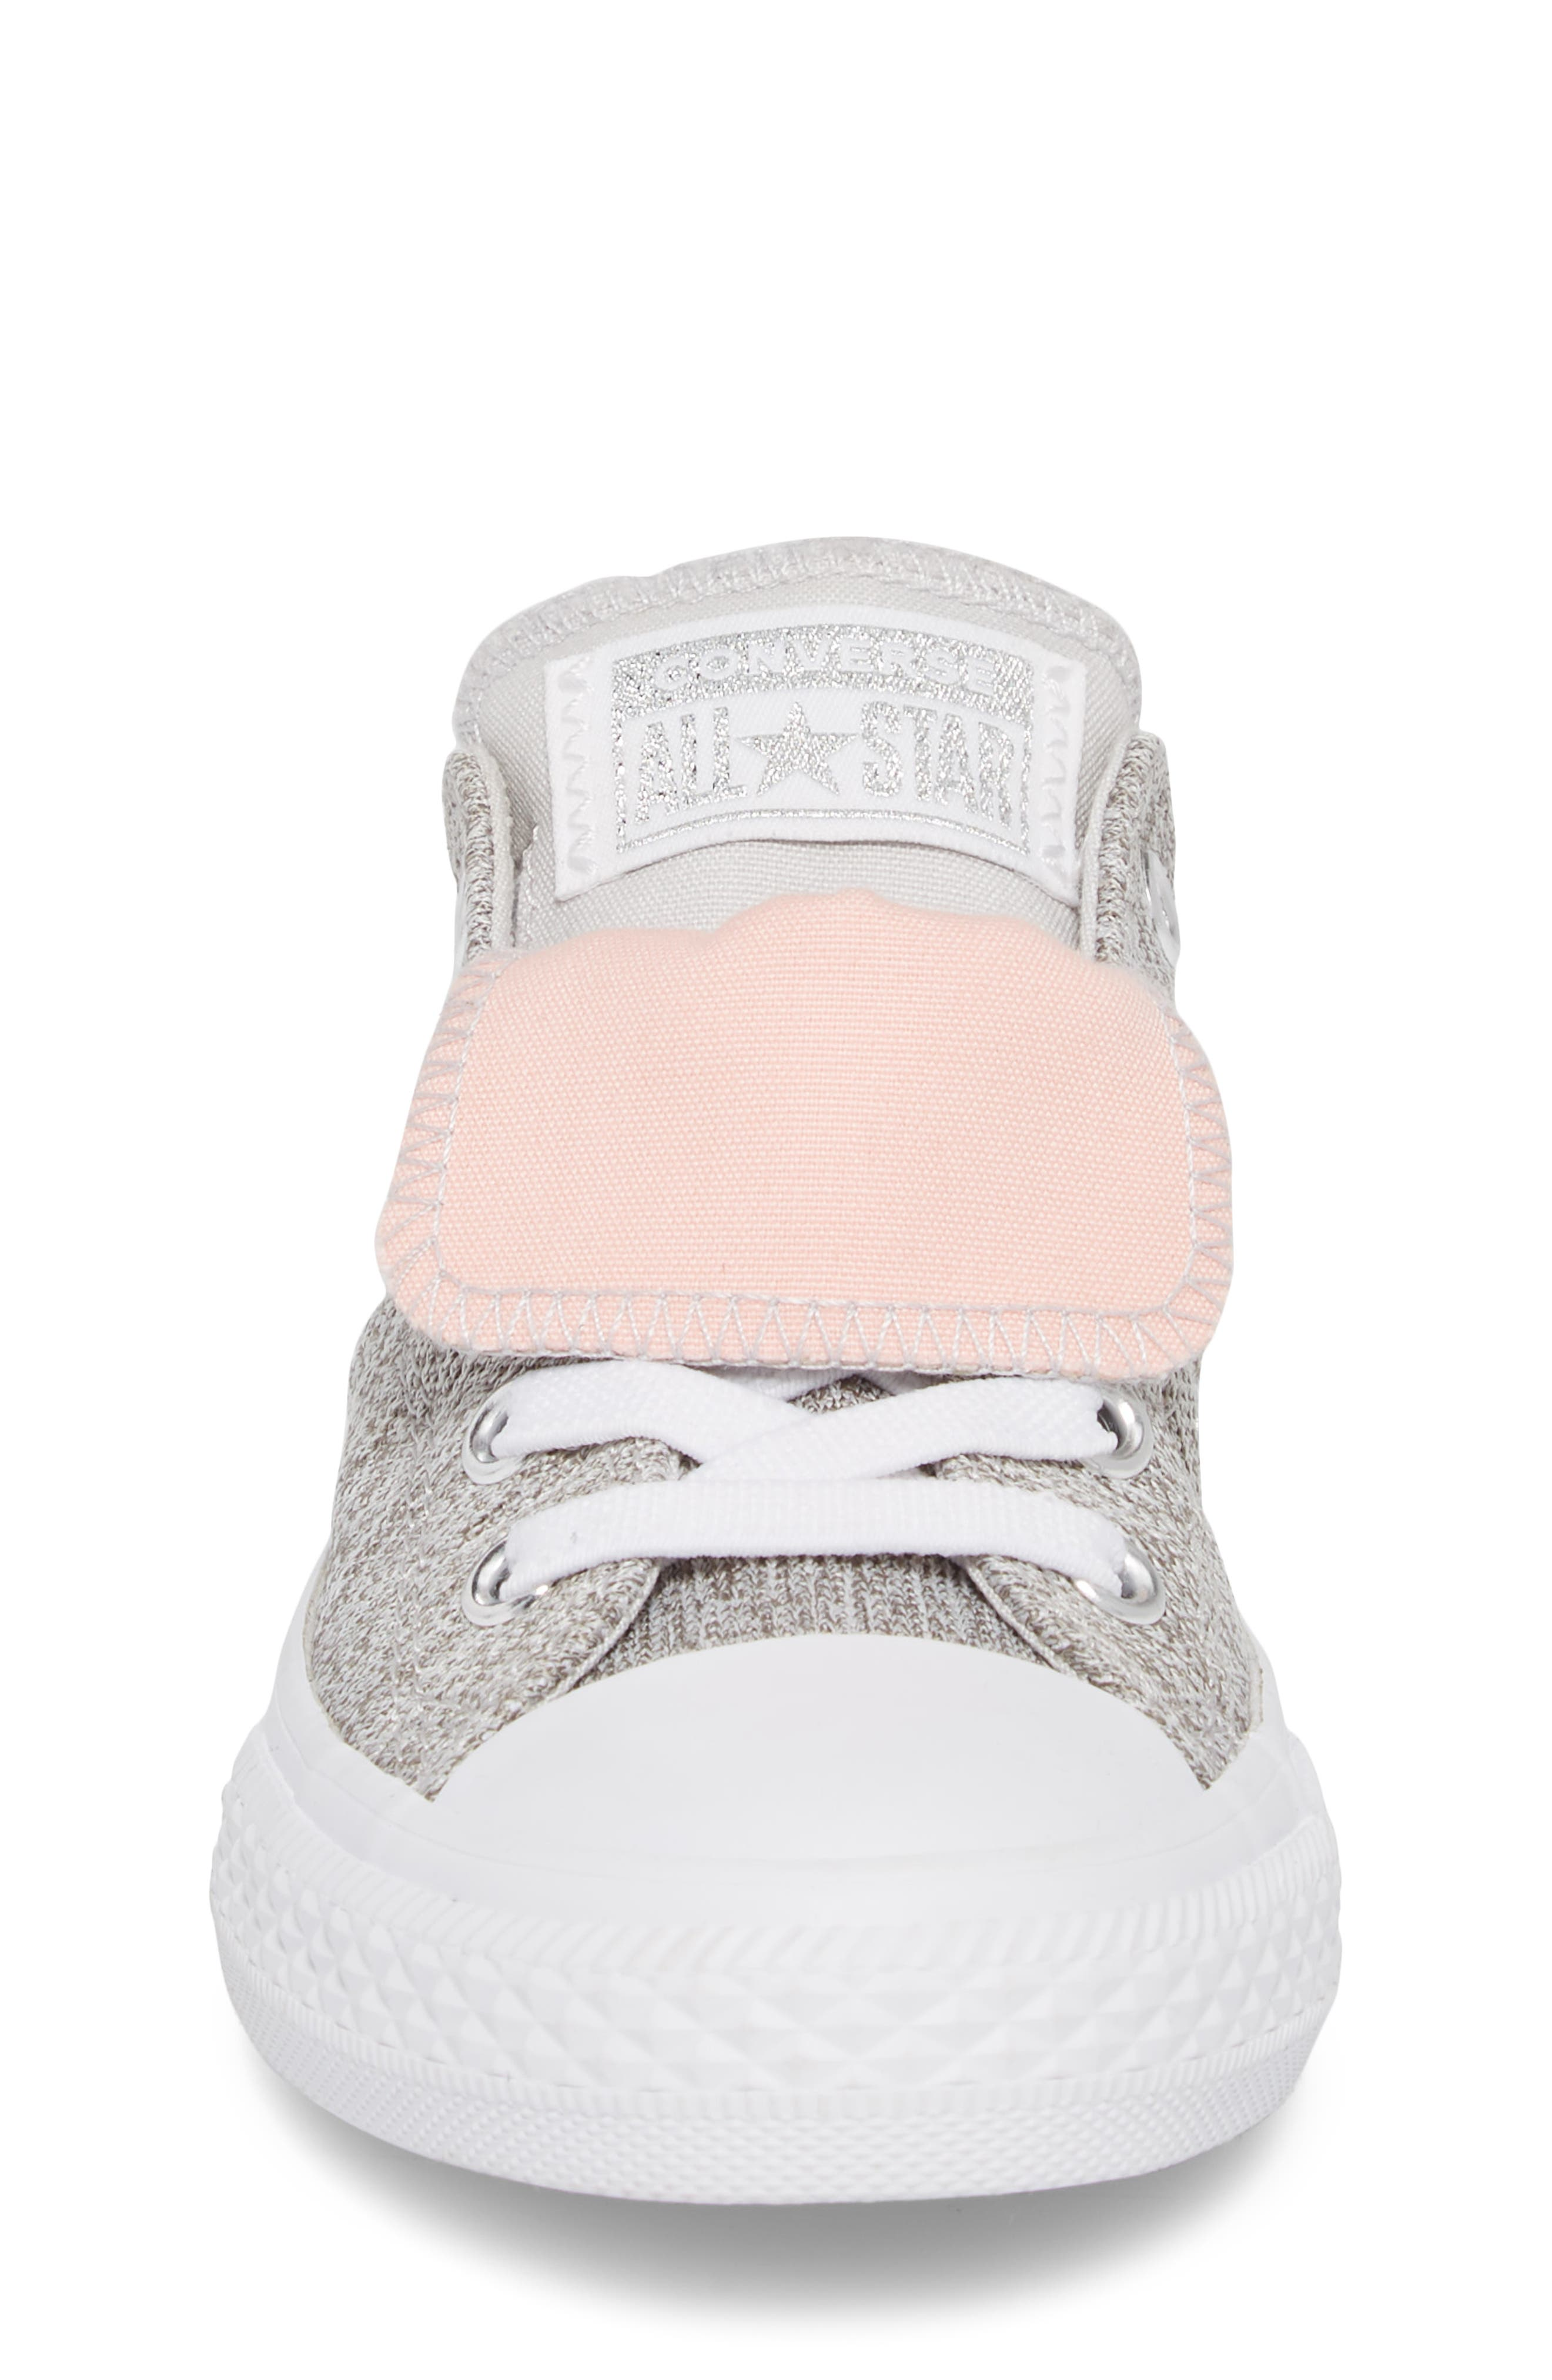 Chuck Taylor<sup>®</sup> All Star<sup>®</sup> Maddie Double Tongue Sneaker,                             Alternate thumbnail 4, color,                             LIGHT GREY